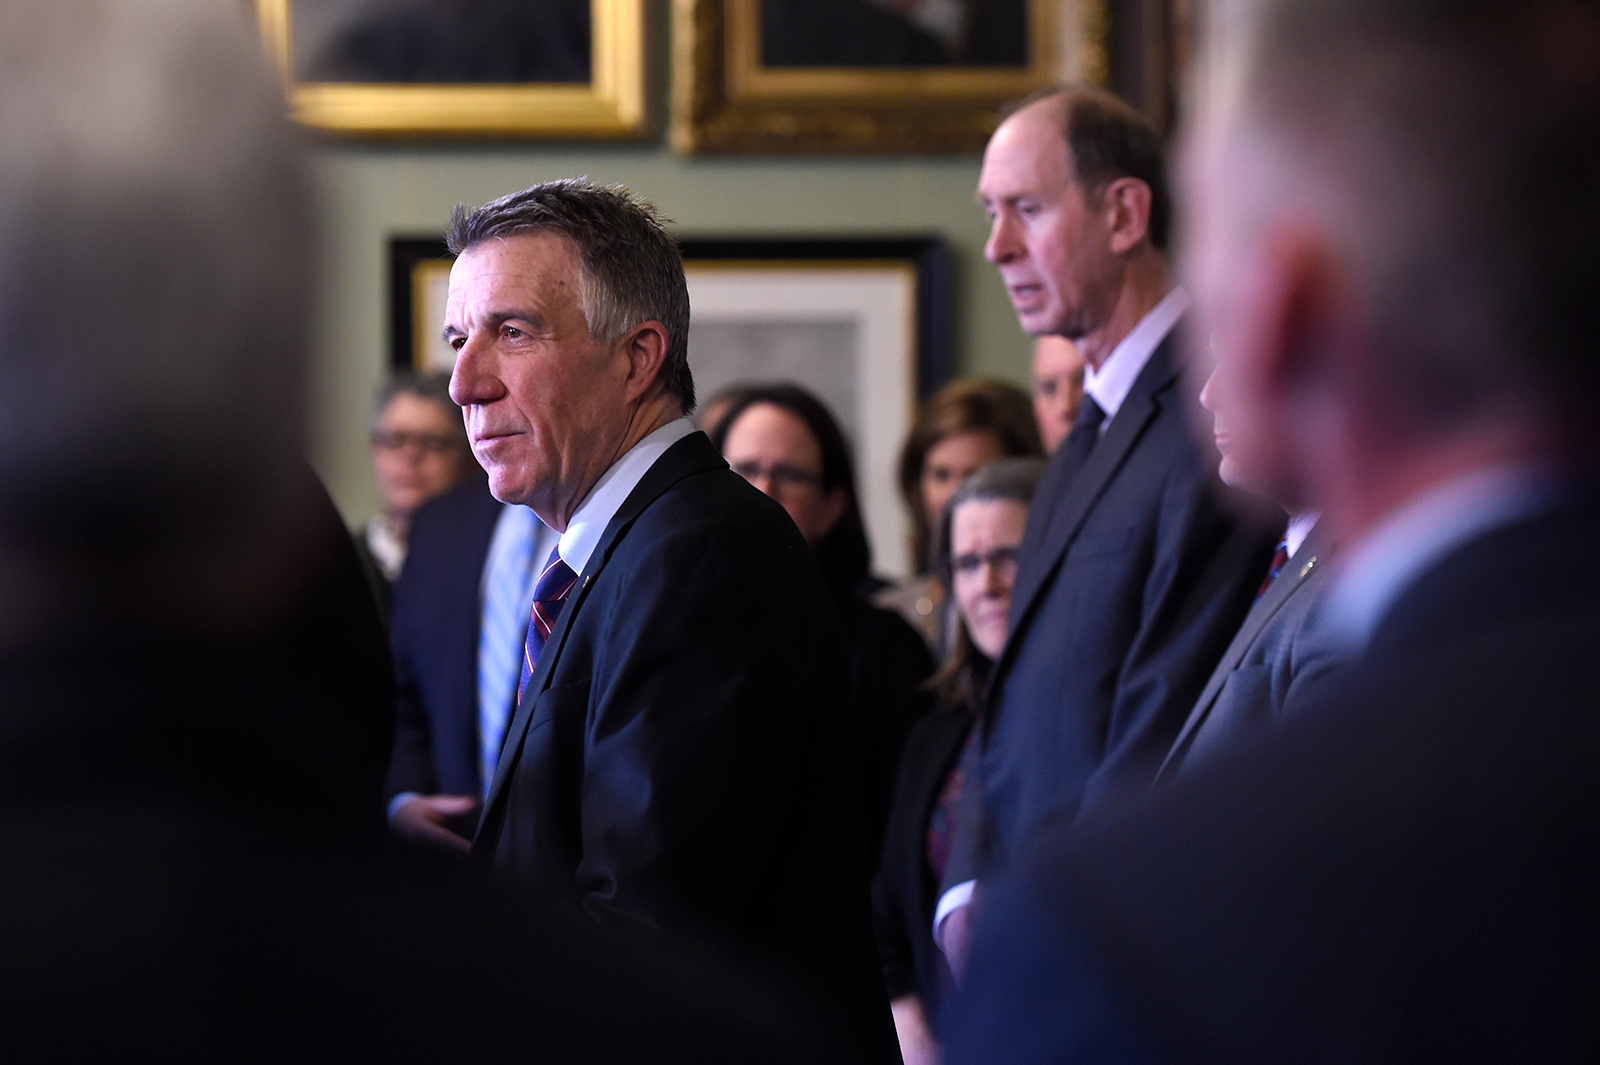 Gov. Phil Scott speaks at a press conference in Montpelier, Vermont, on March 13.